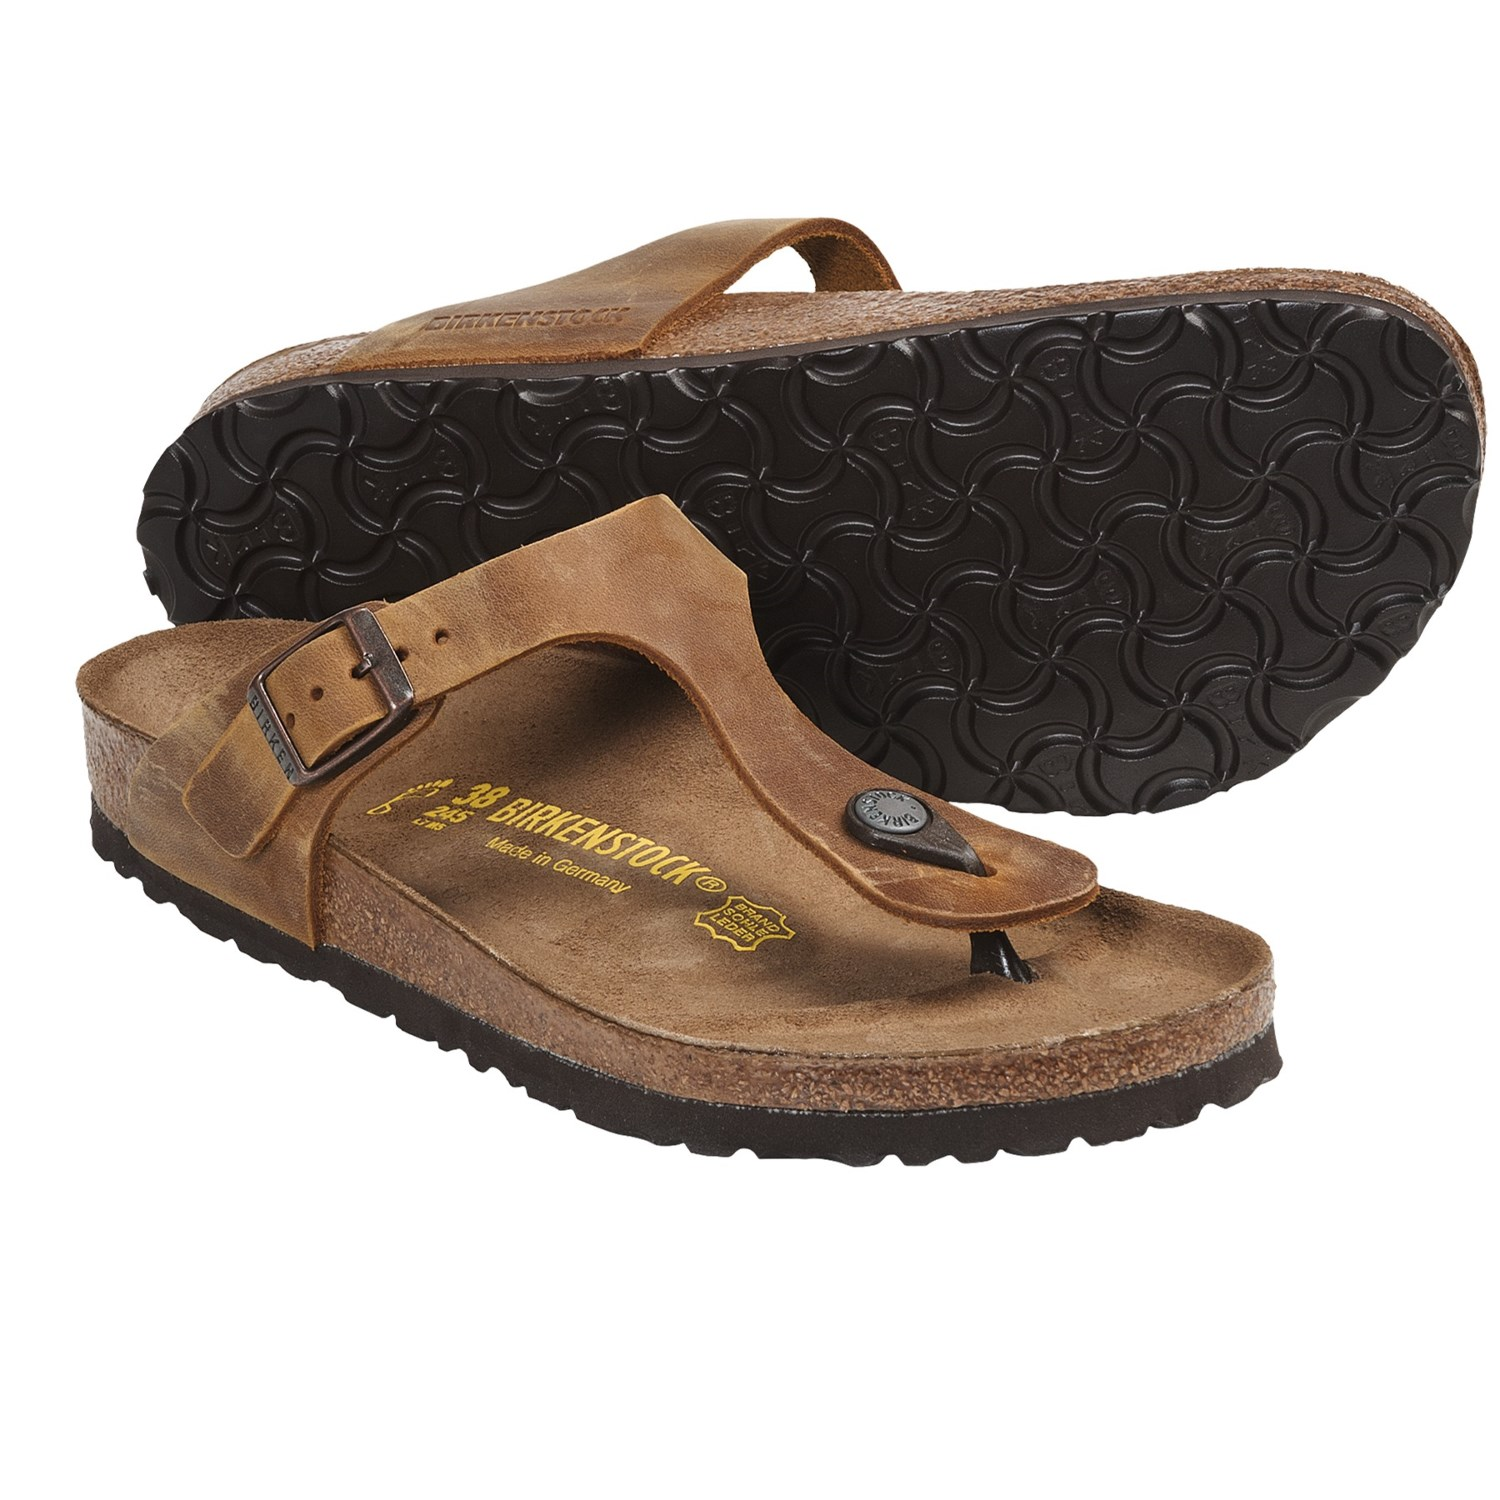 Birkenstock Gizeh Sandals For Women 5943x Save 42